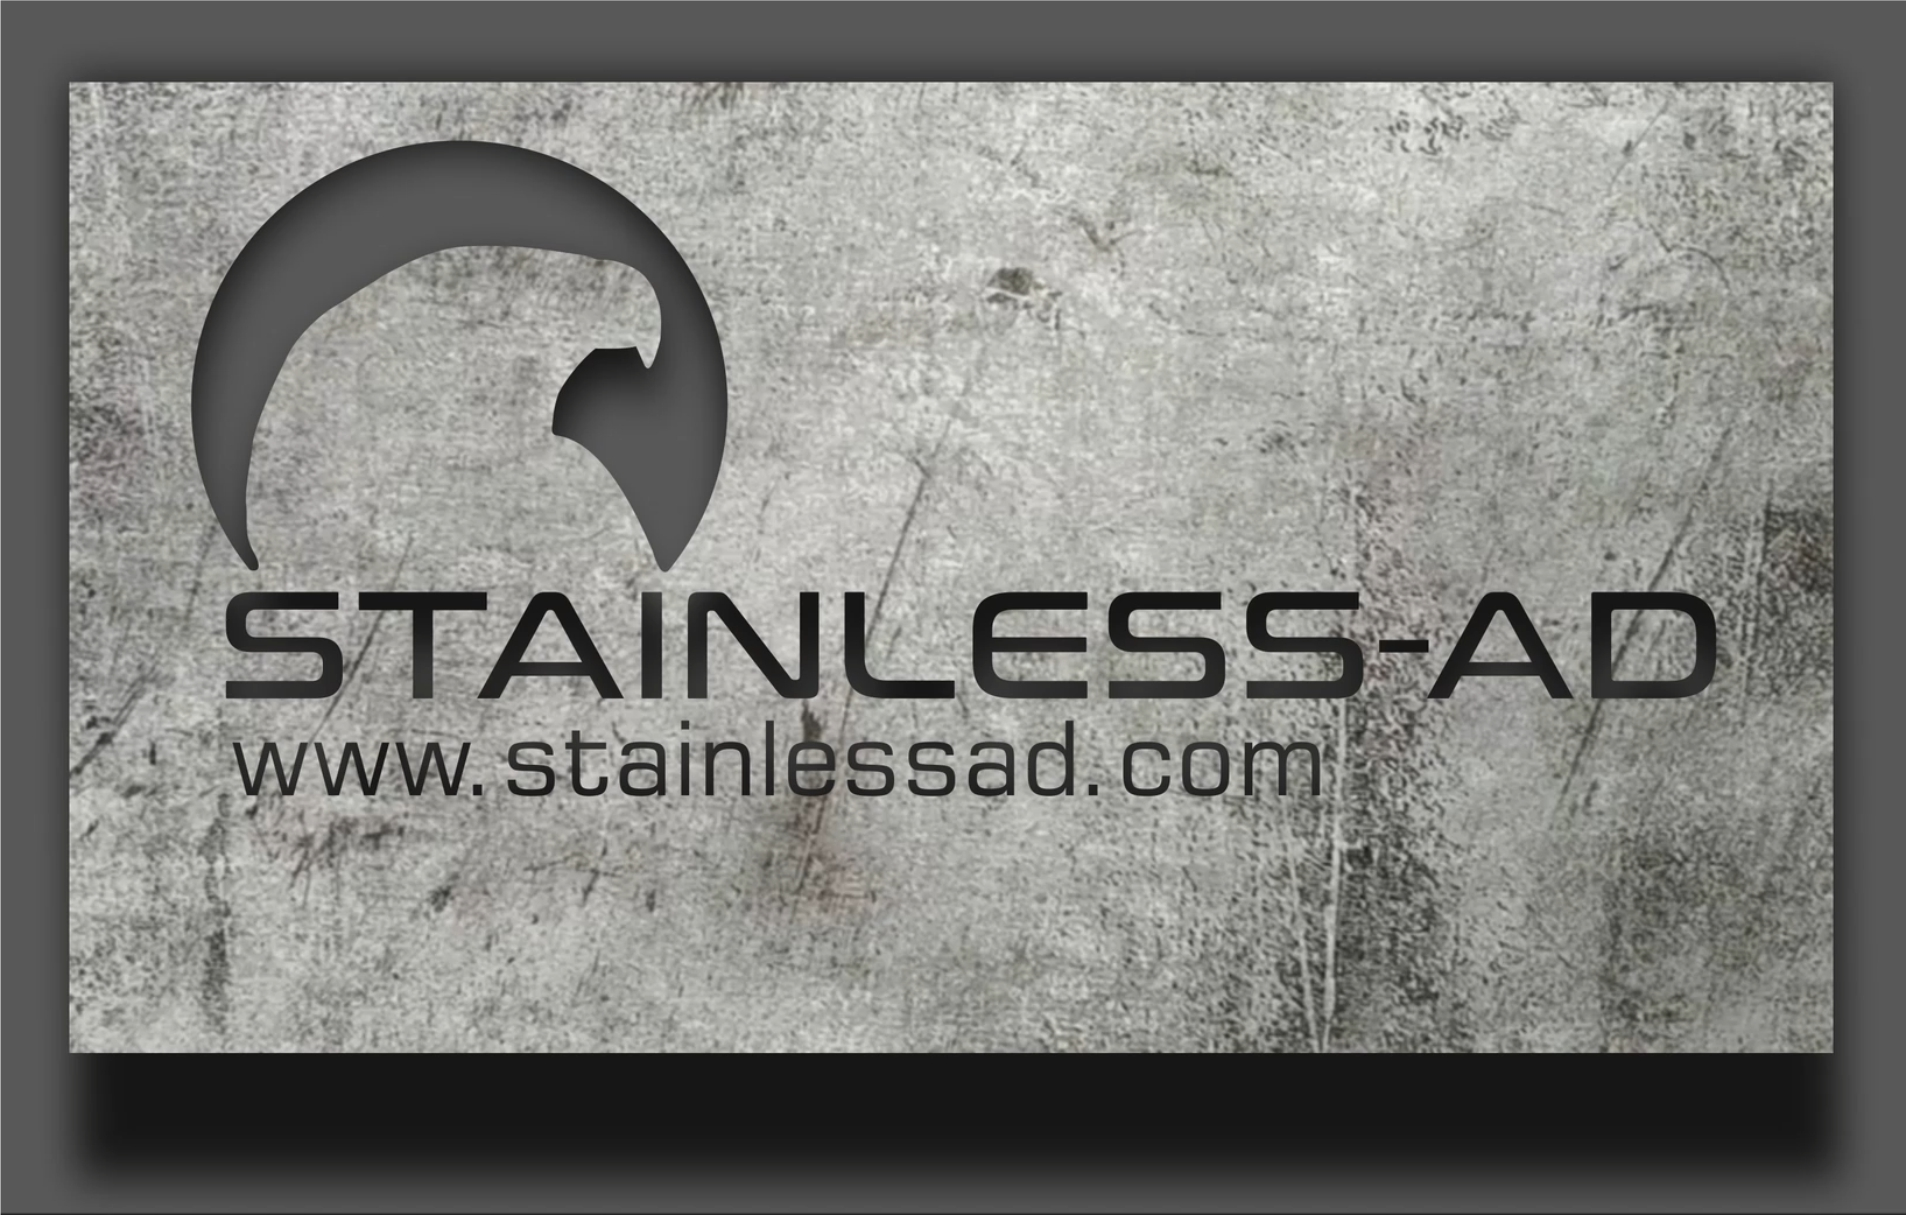 STAINLESS AD 001